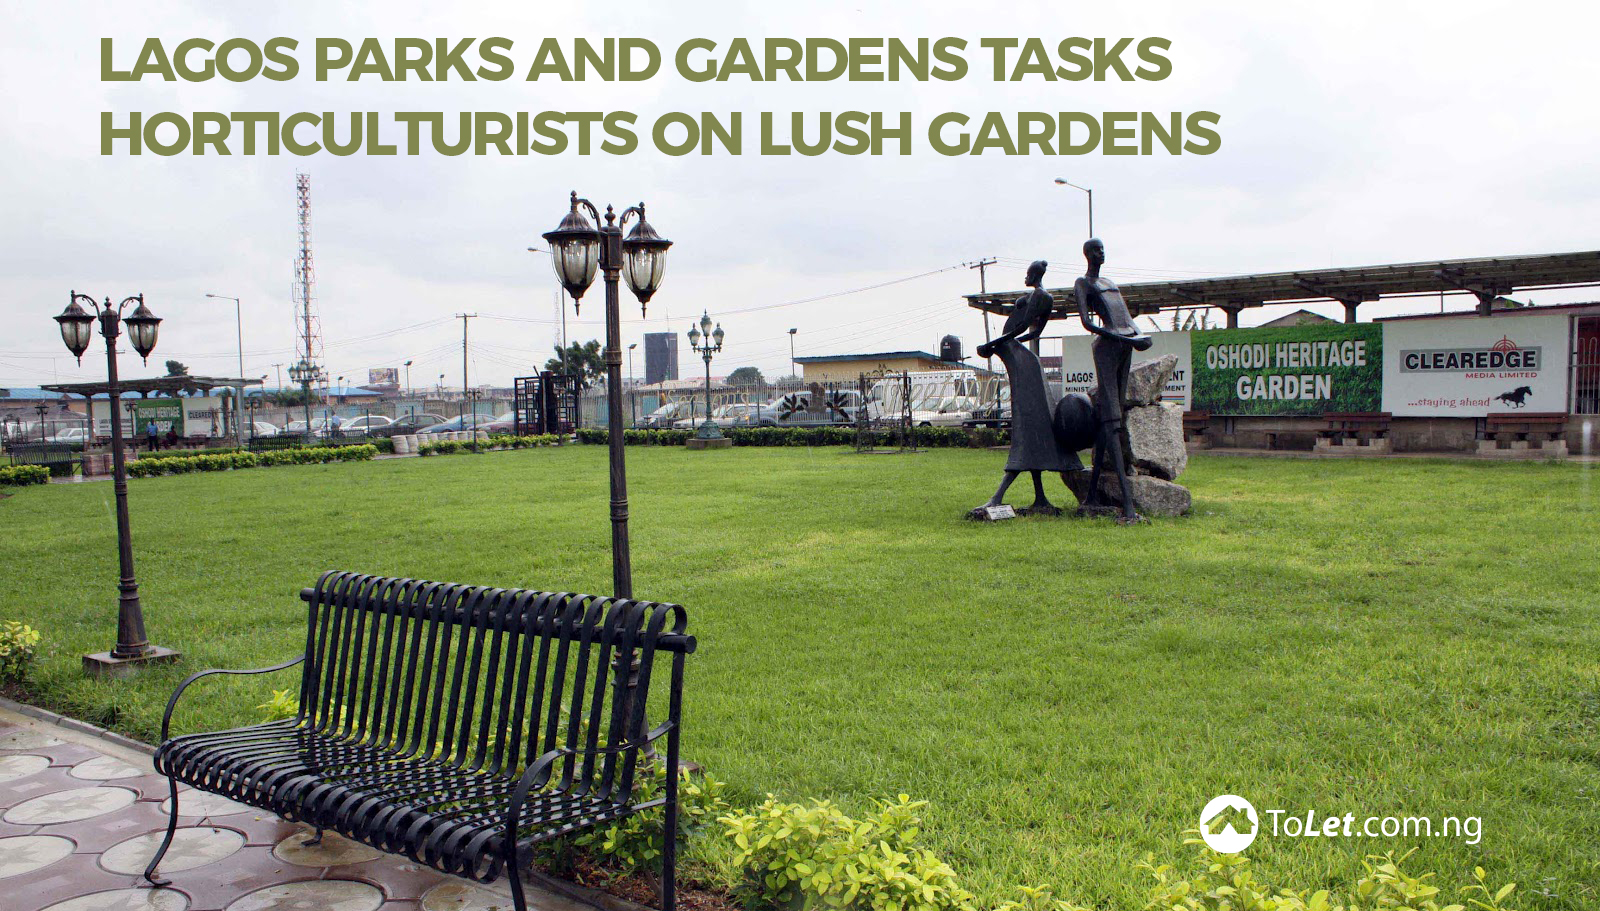 Lagos parks and gardens